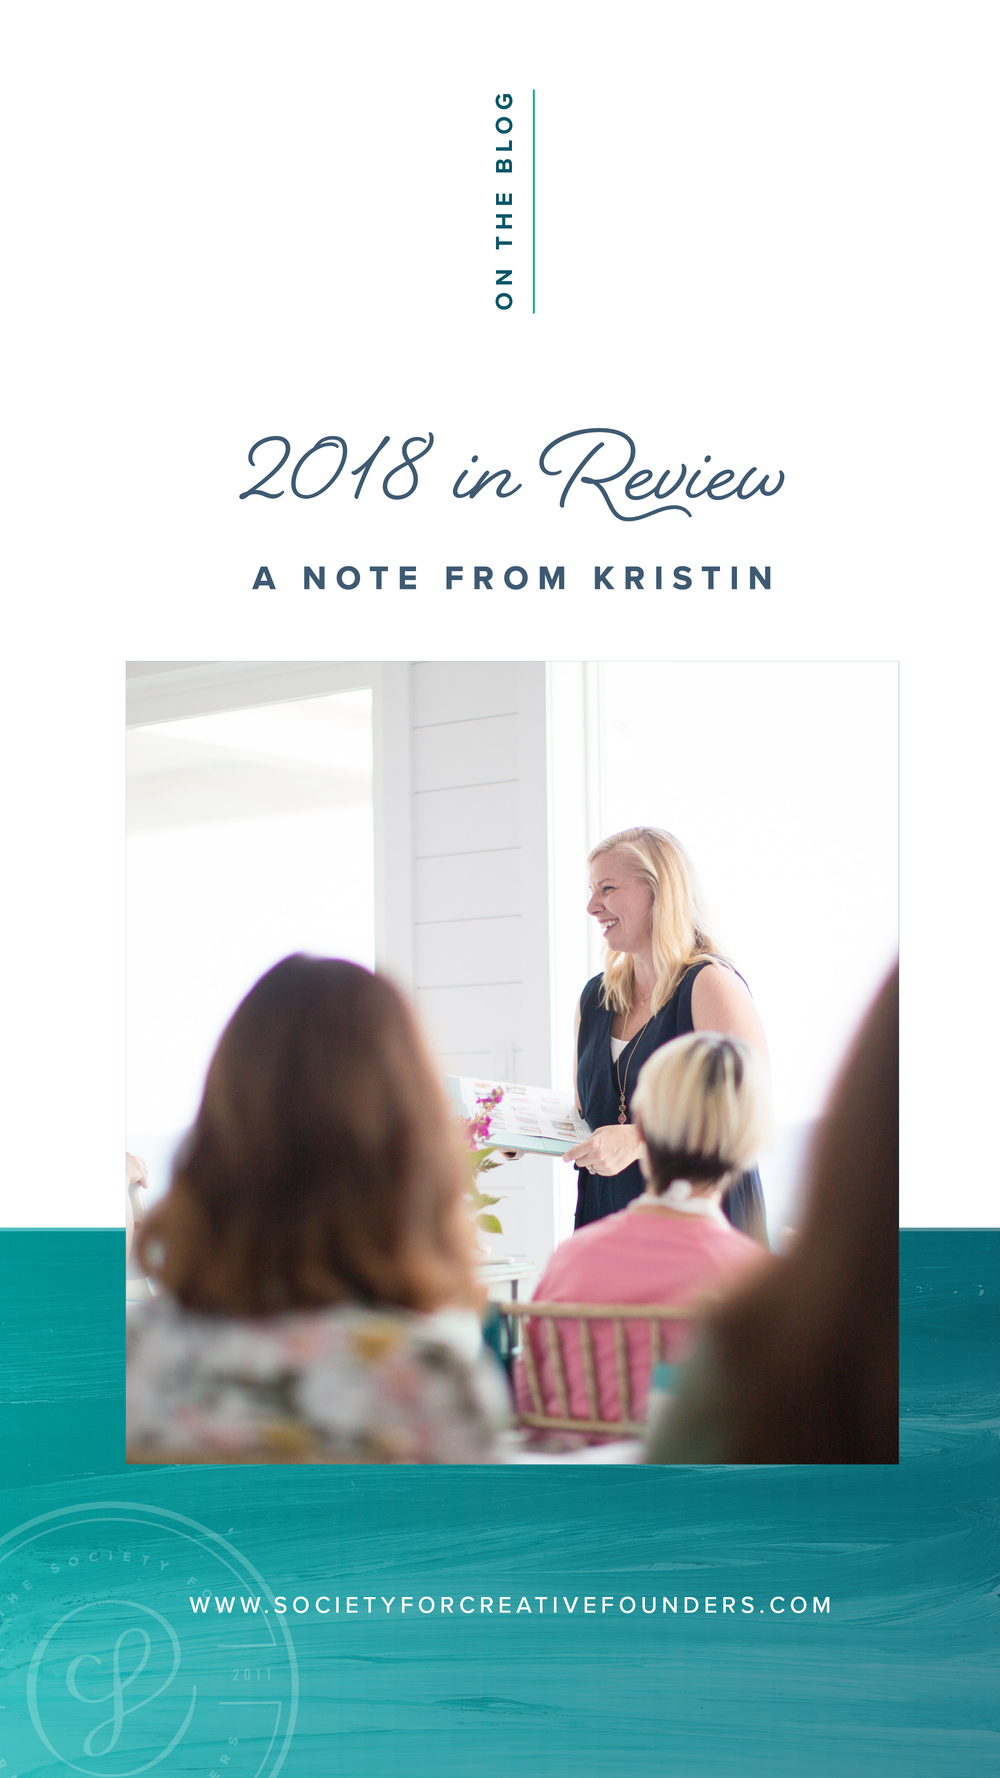 A Note from Kristin of the Society for Creative Founders | 2018 in Review